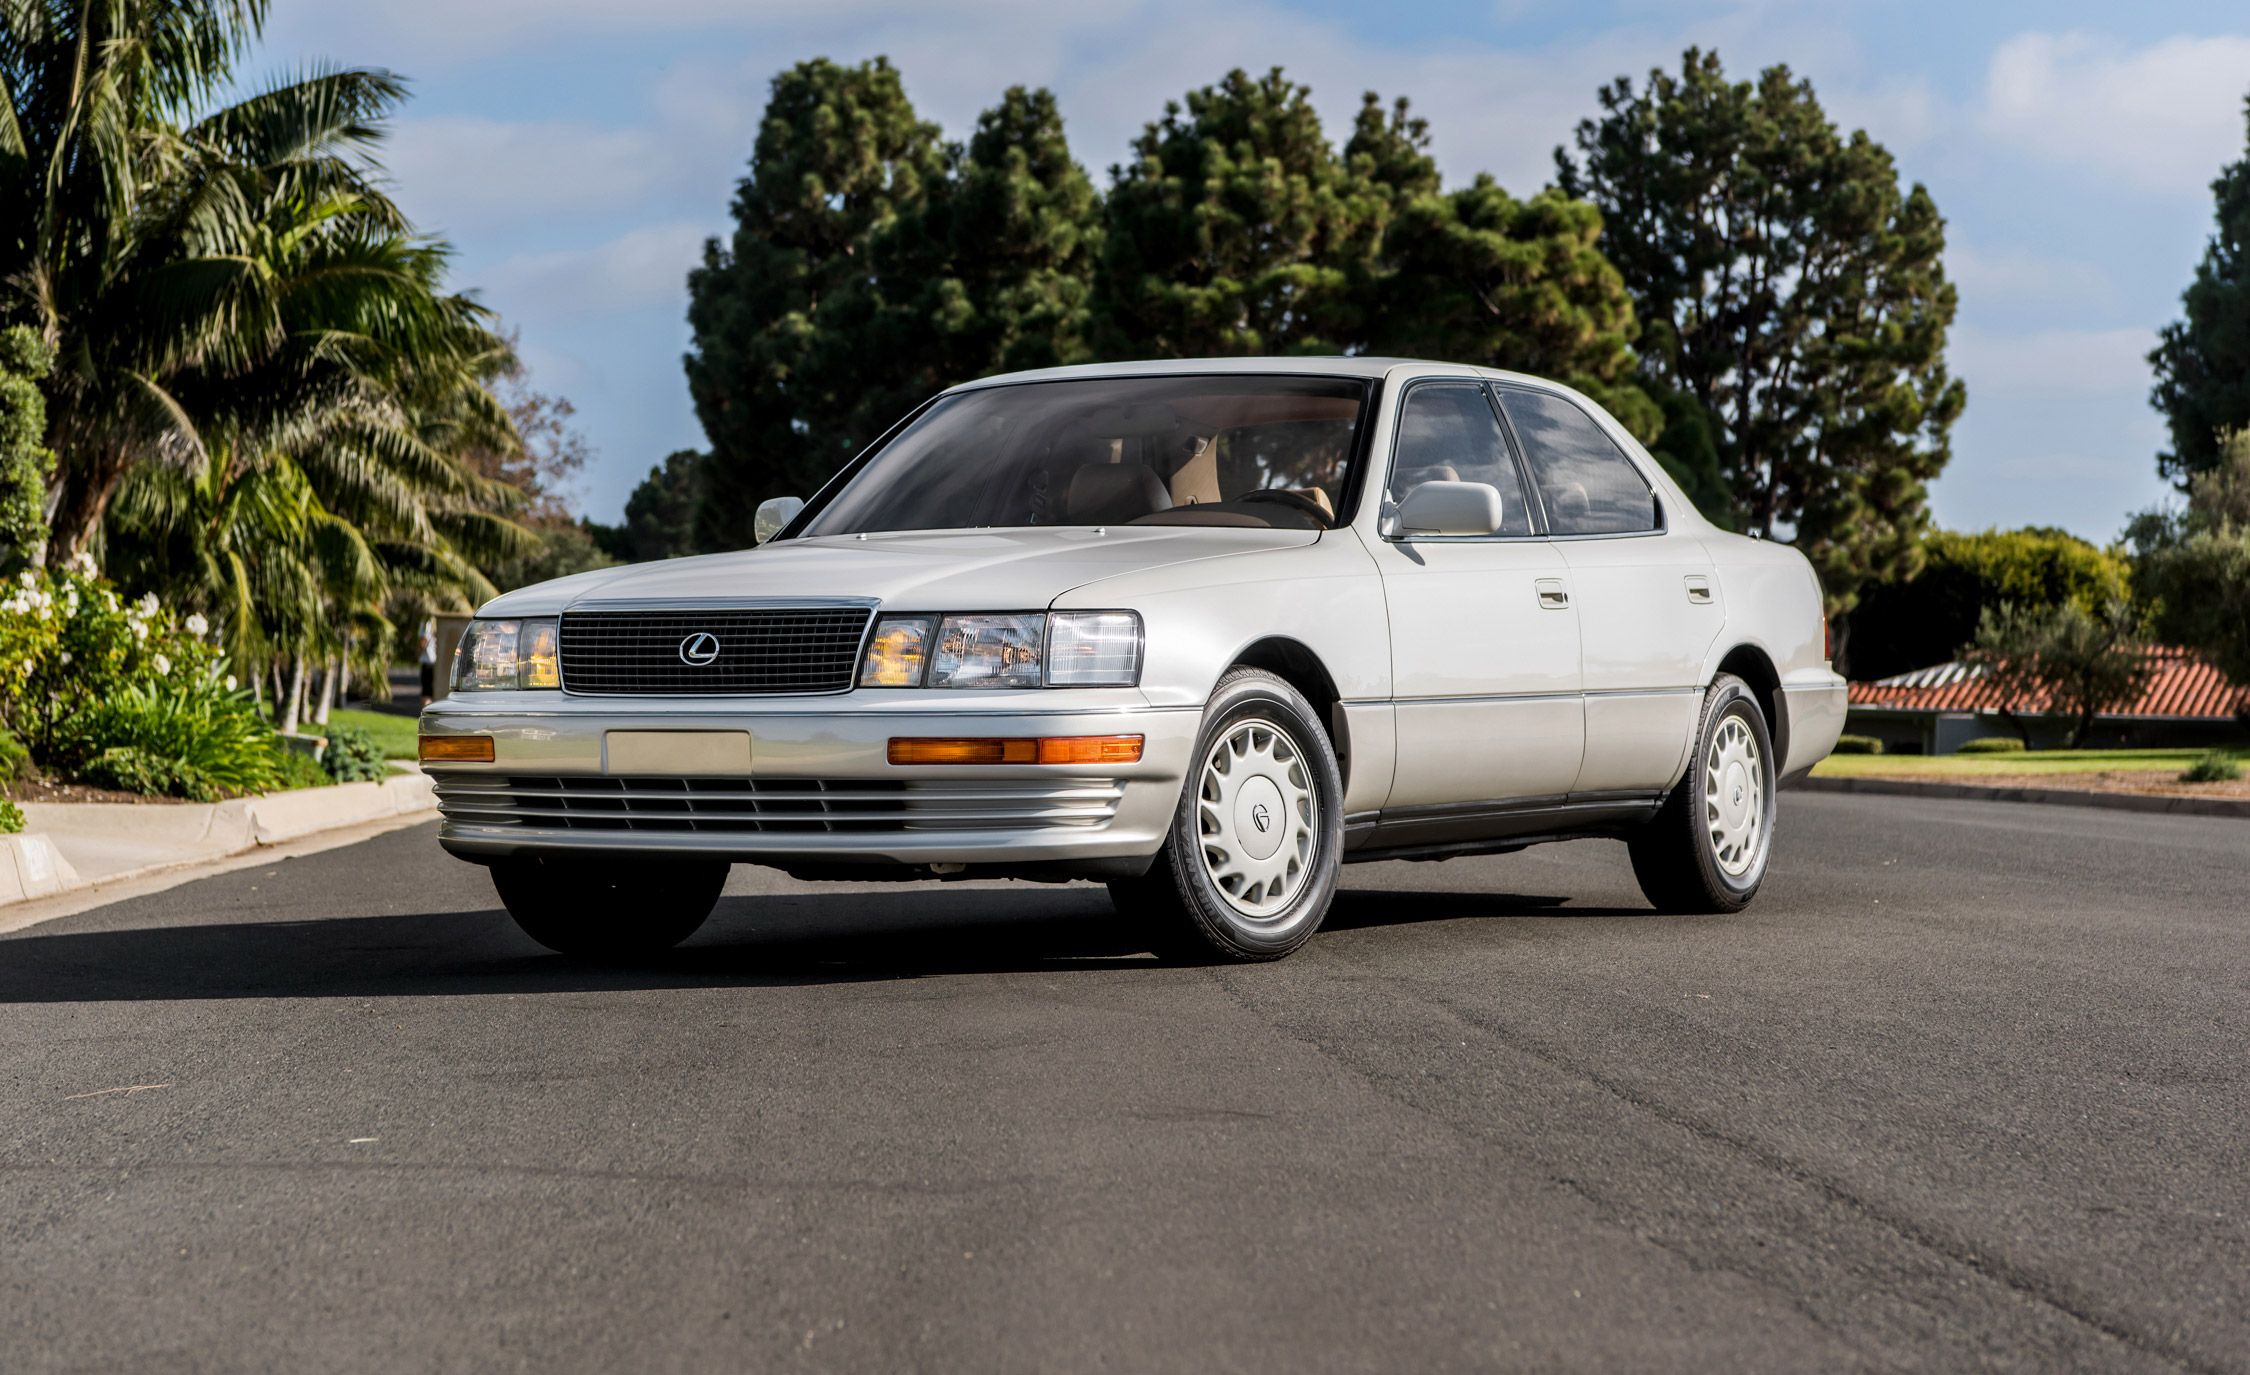 luxury car japan  Luxury, Japan Style: Revisiting the Original Lexus LS400 | Feature ...